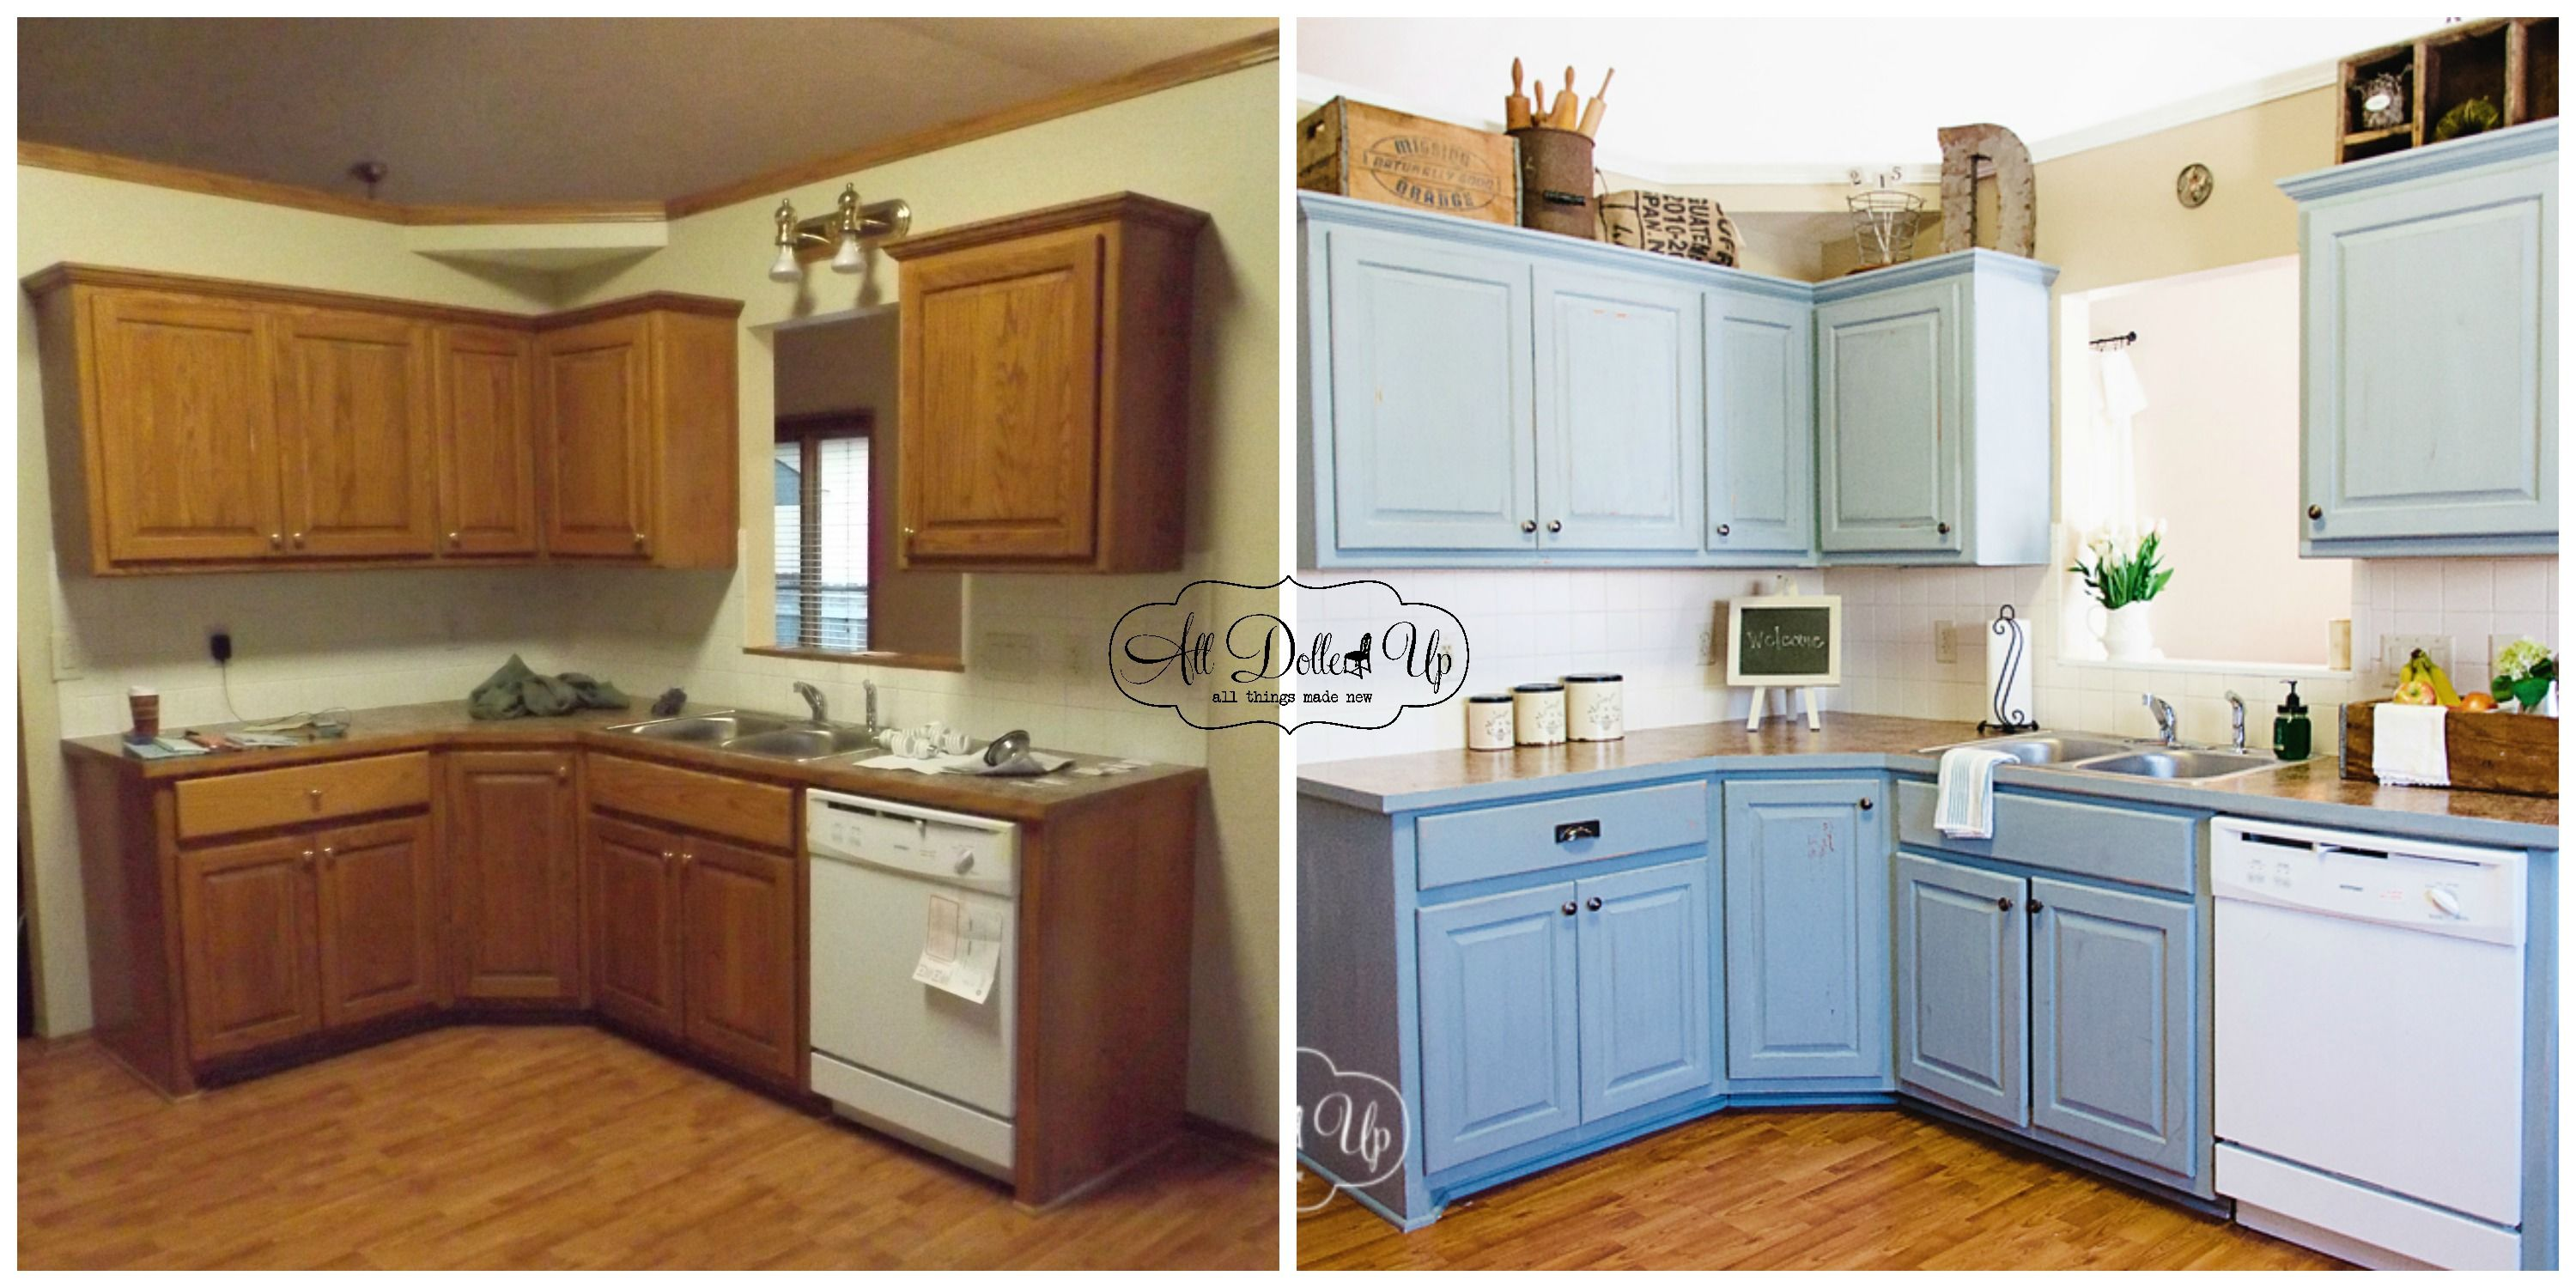 Doll House Tour Kitchen Updates Milk Paint Kitchen Cabinets Kitchen Cabinets Kitchen Cabinet Design